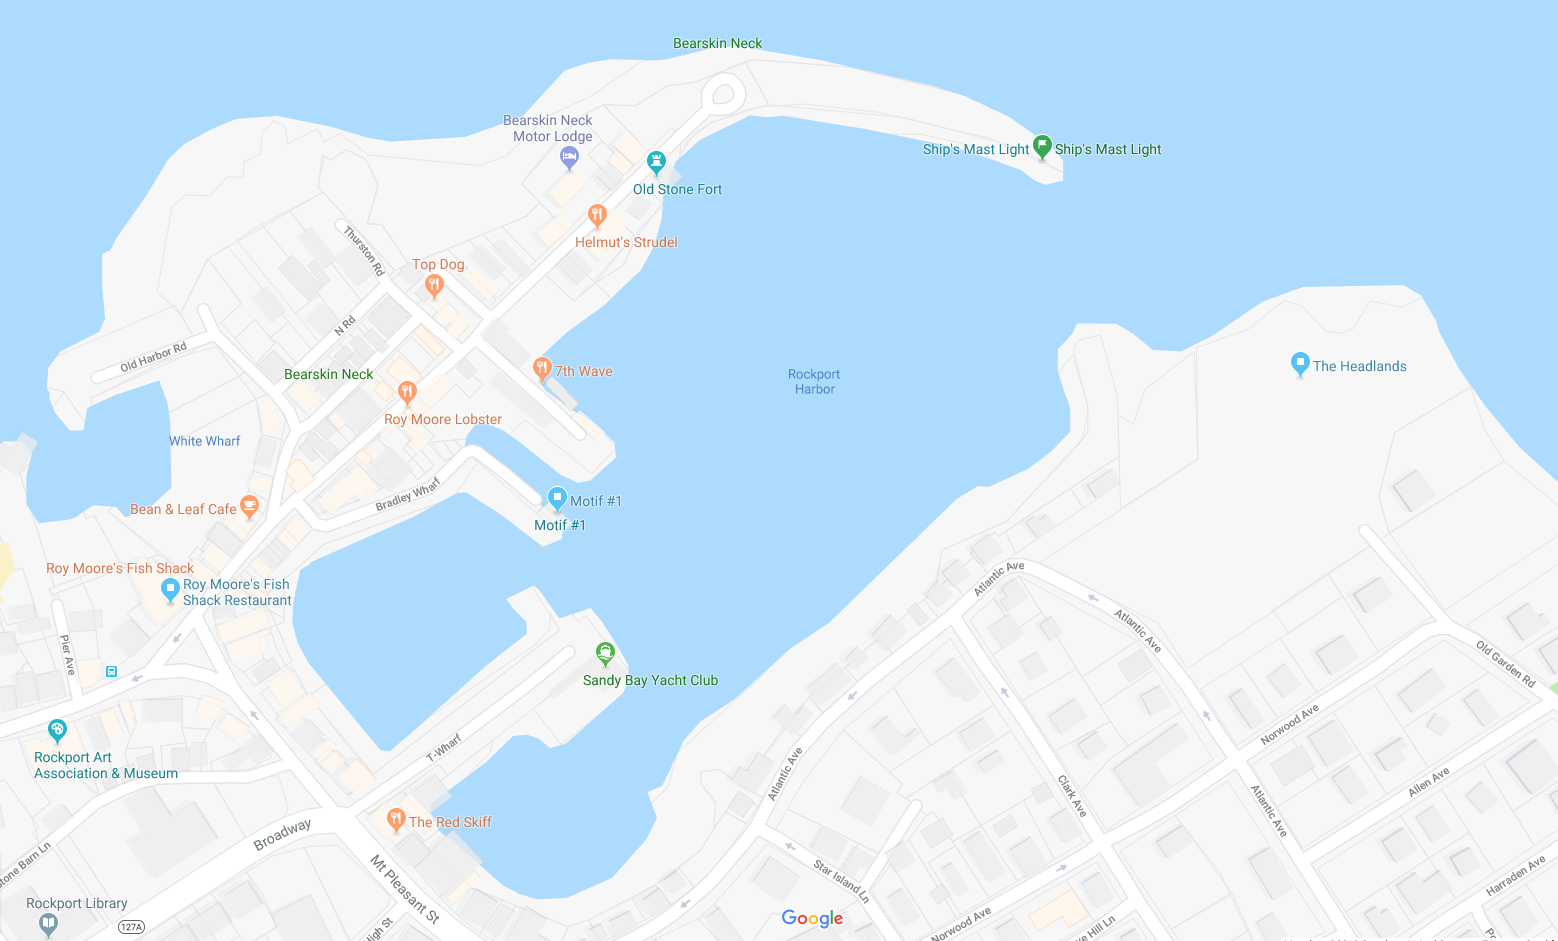 Map of Rockport, MA. To get to the Headlands (blue icon on the upper right), walk from Bearskin Neck via Pt. Pleasant Avenue and Atlantic Avenue. There will be a sign marking the trail to the Headlands from the last house on the street on Atlantic Avenue.